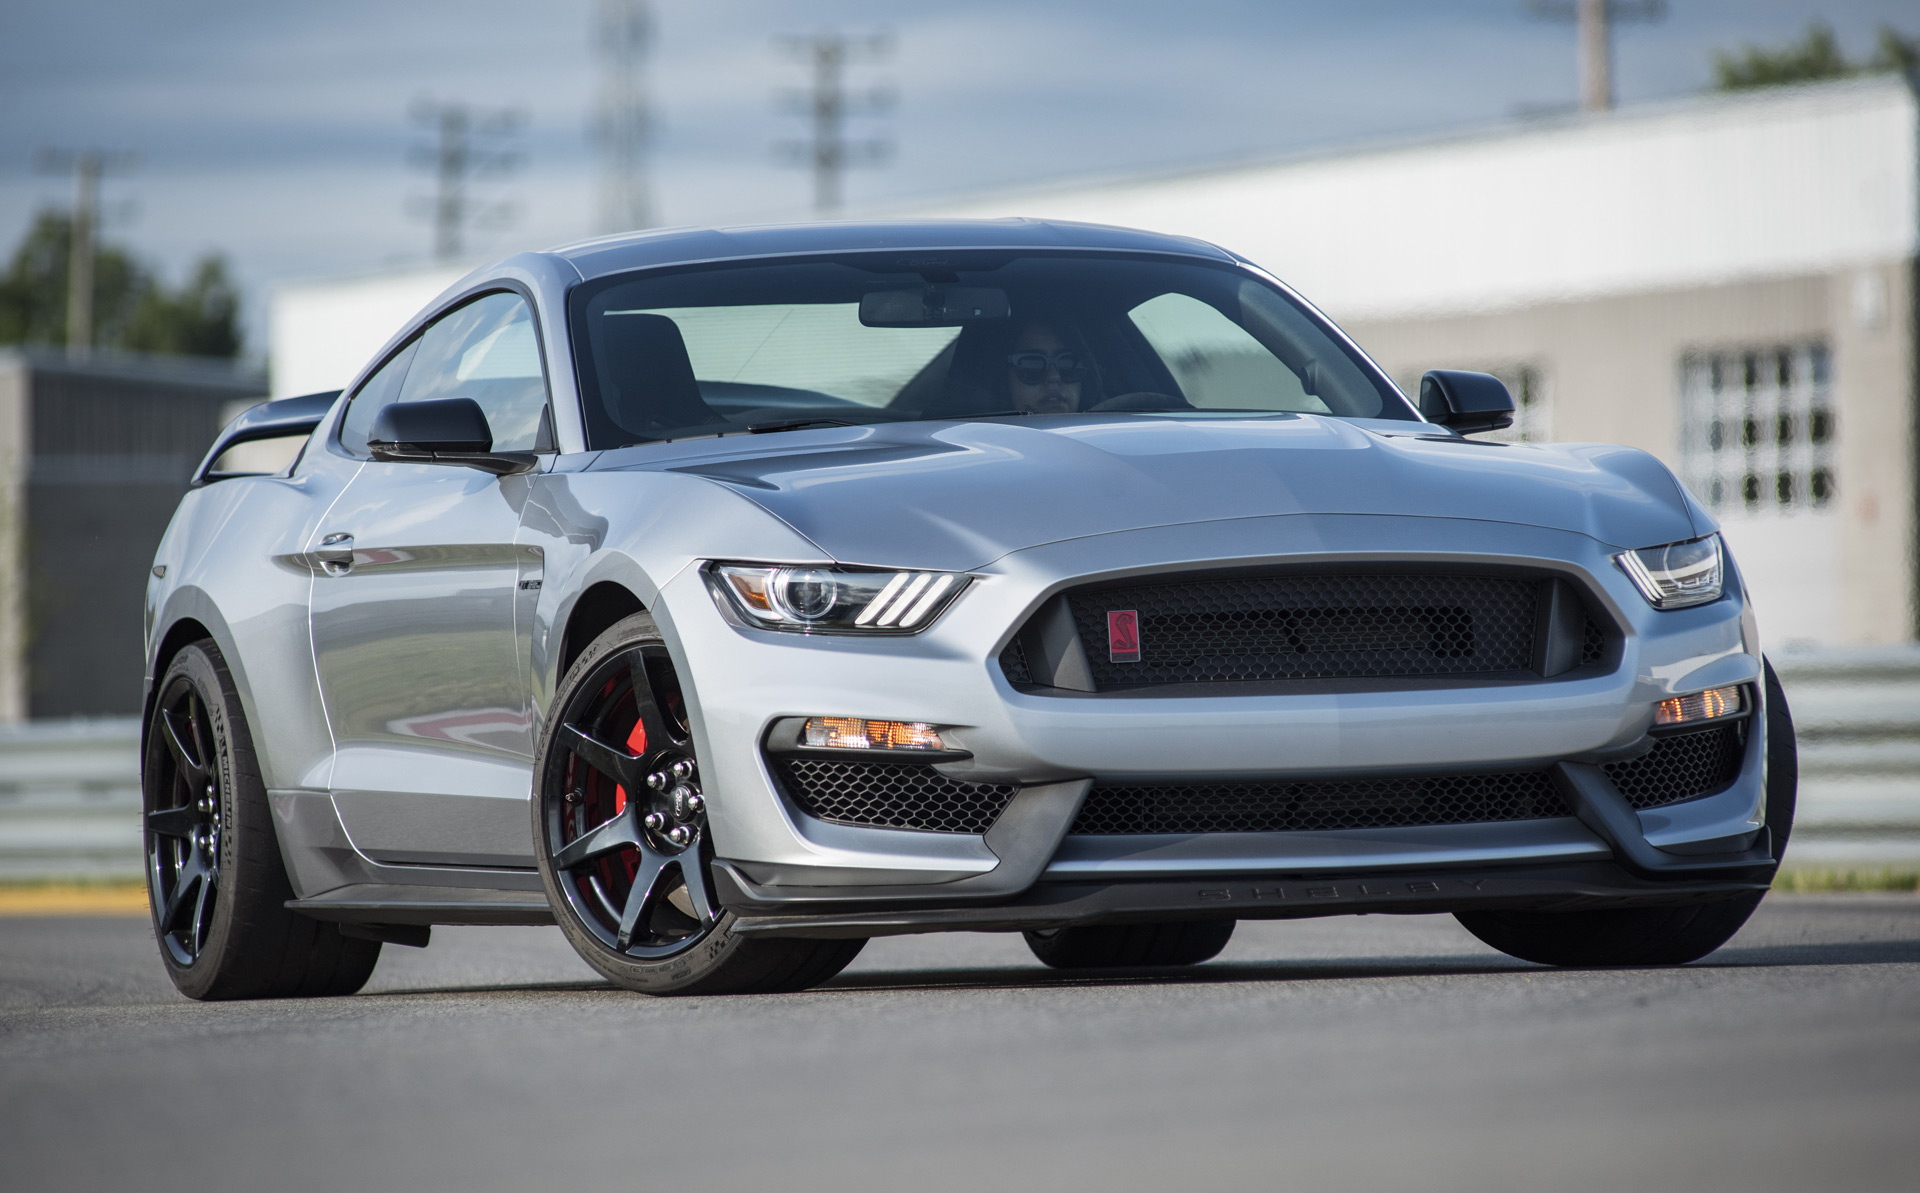 5 is final year for Ford Mustang Shelby GT5